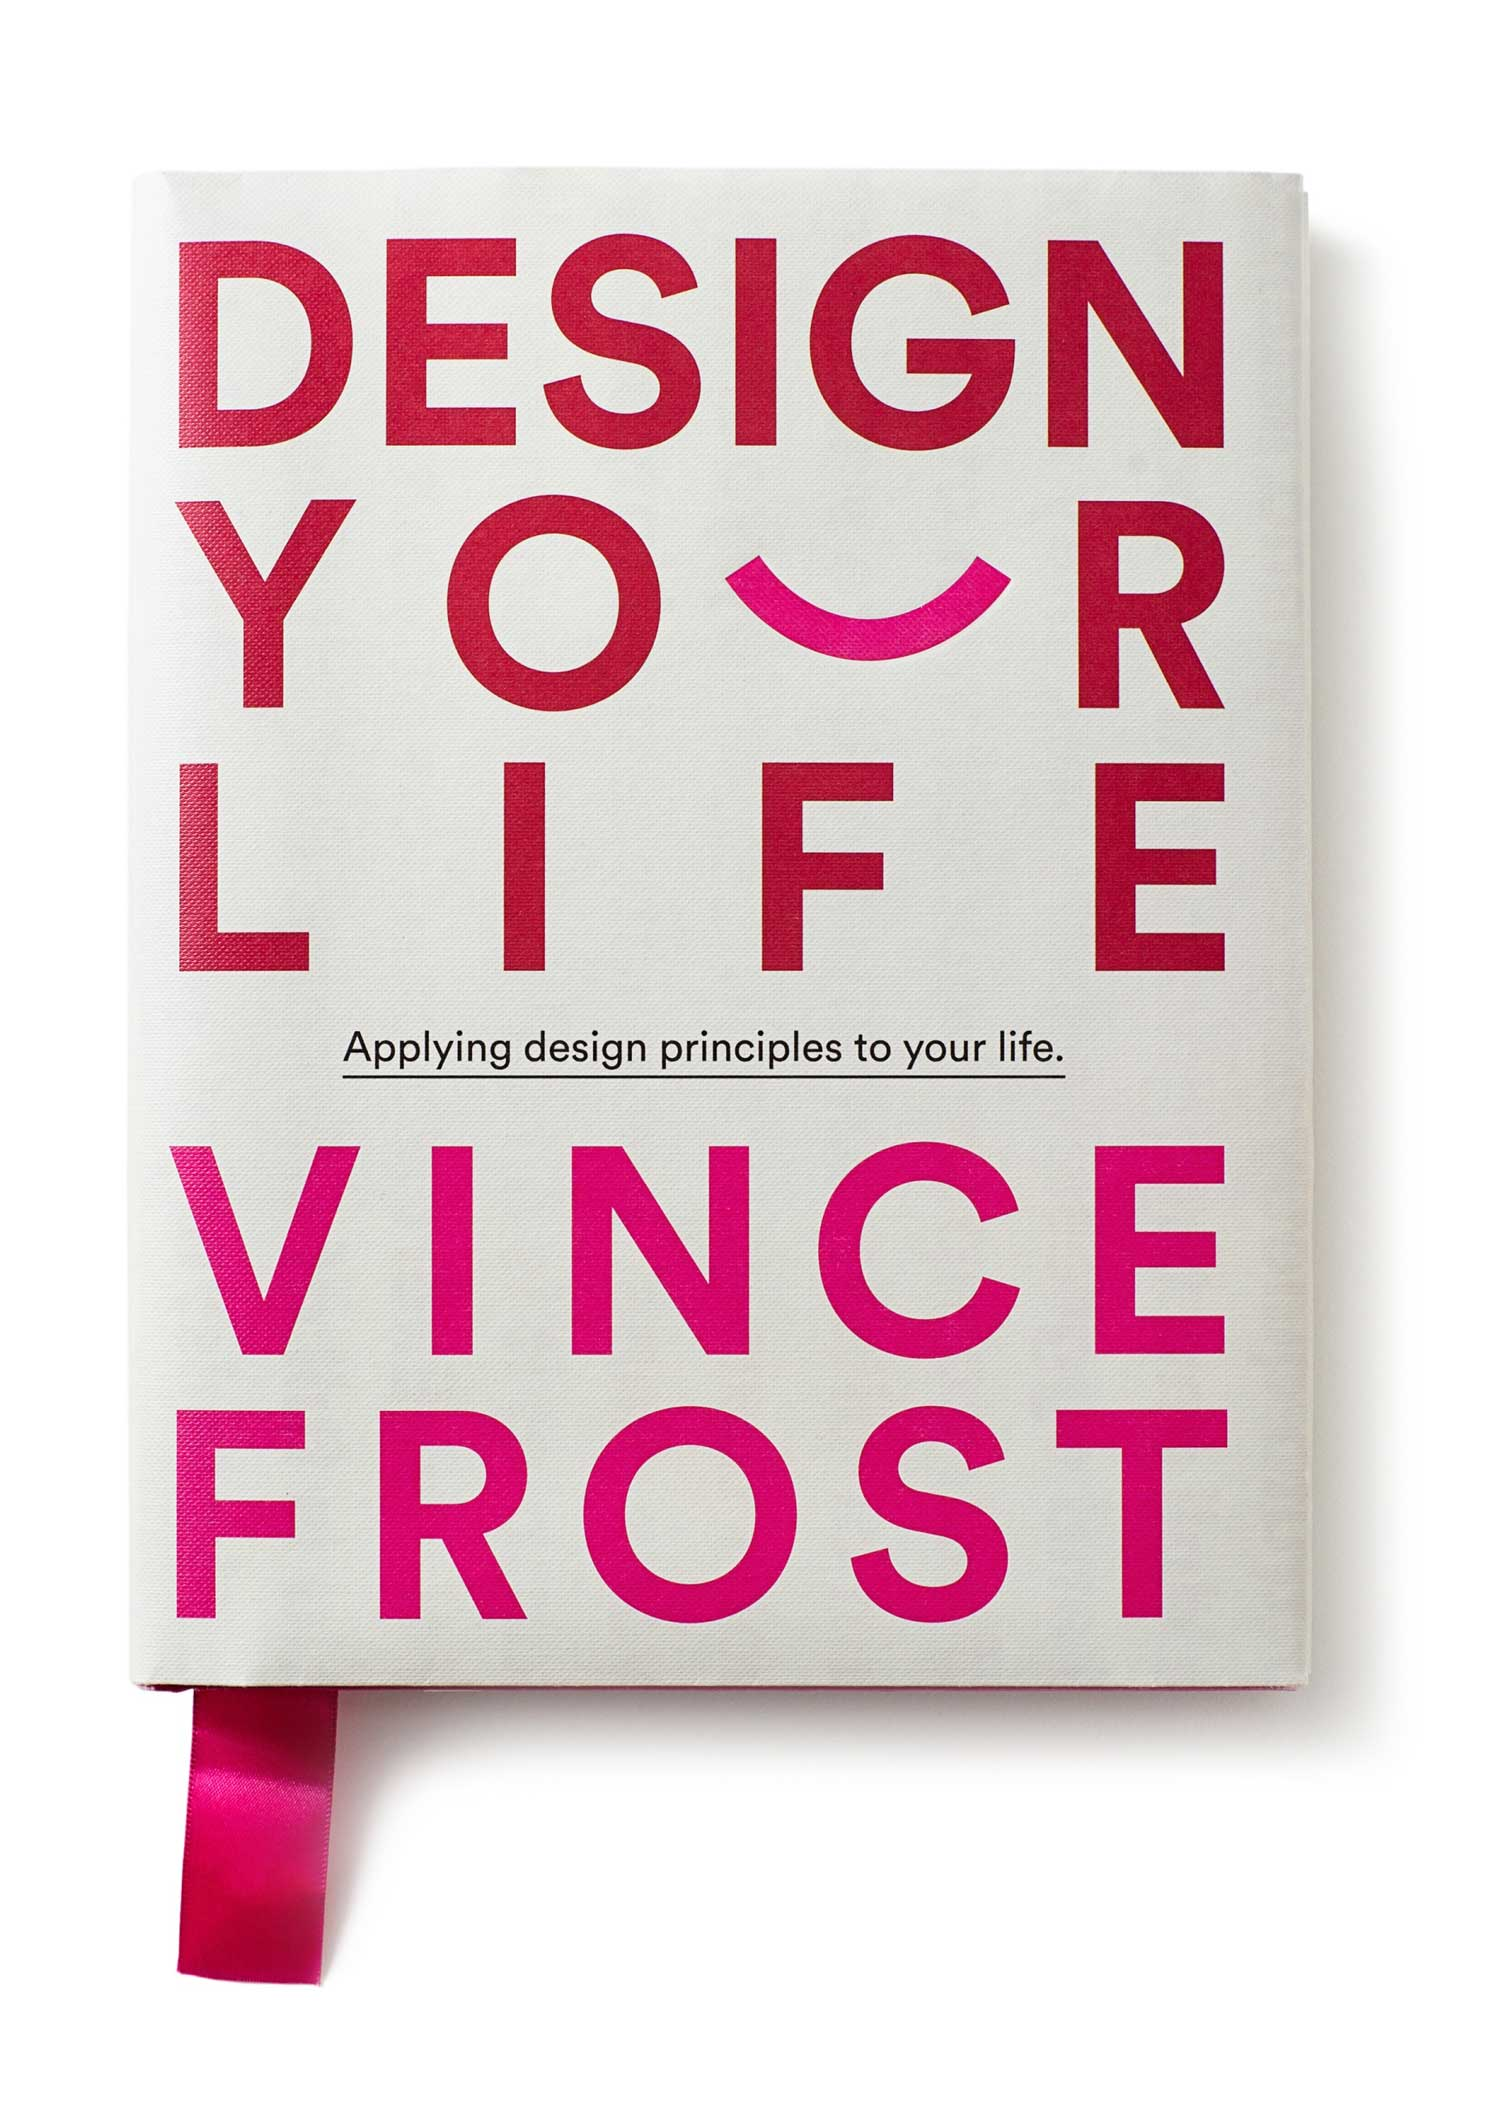 Design Your Life by Vince Frost | Yellowtrace